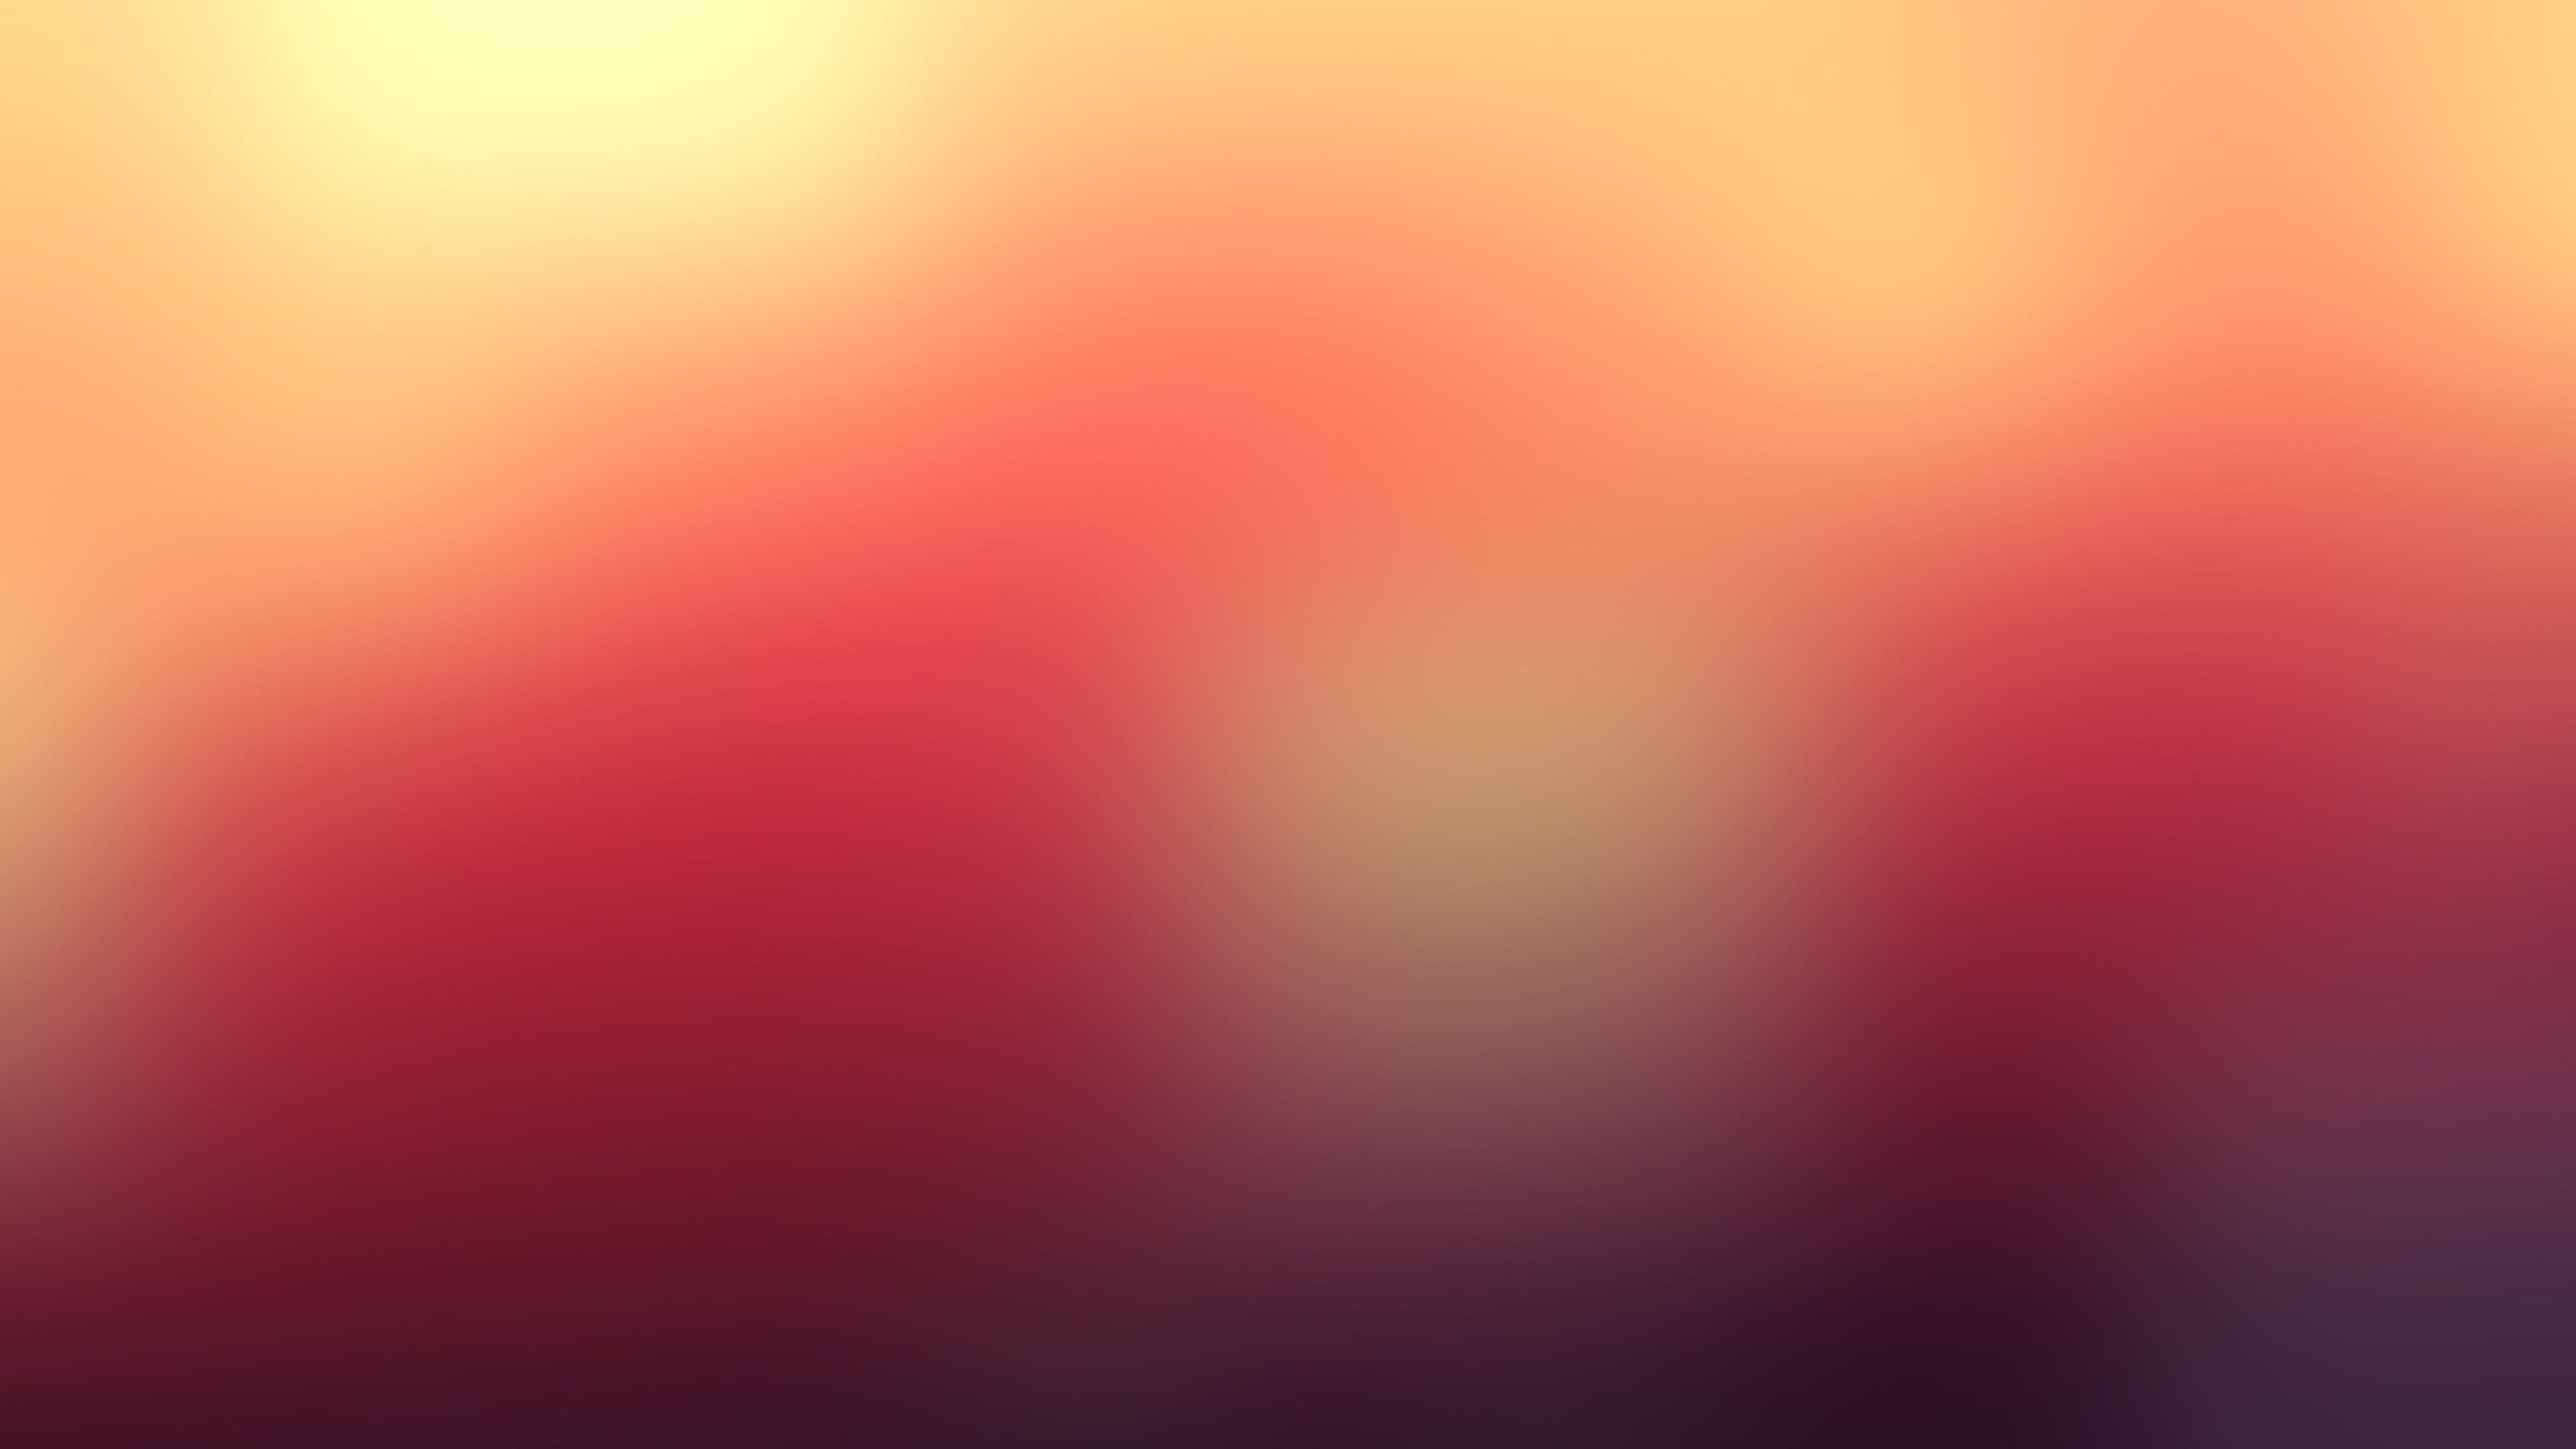 3840x2160 blurred 4k cool background image Ombre